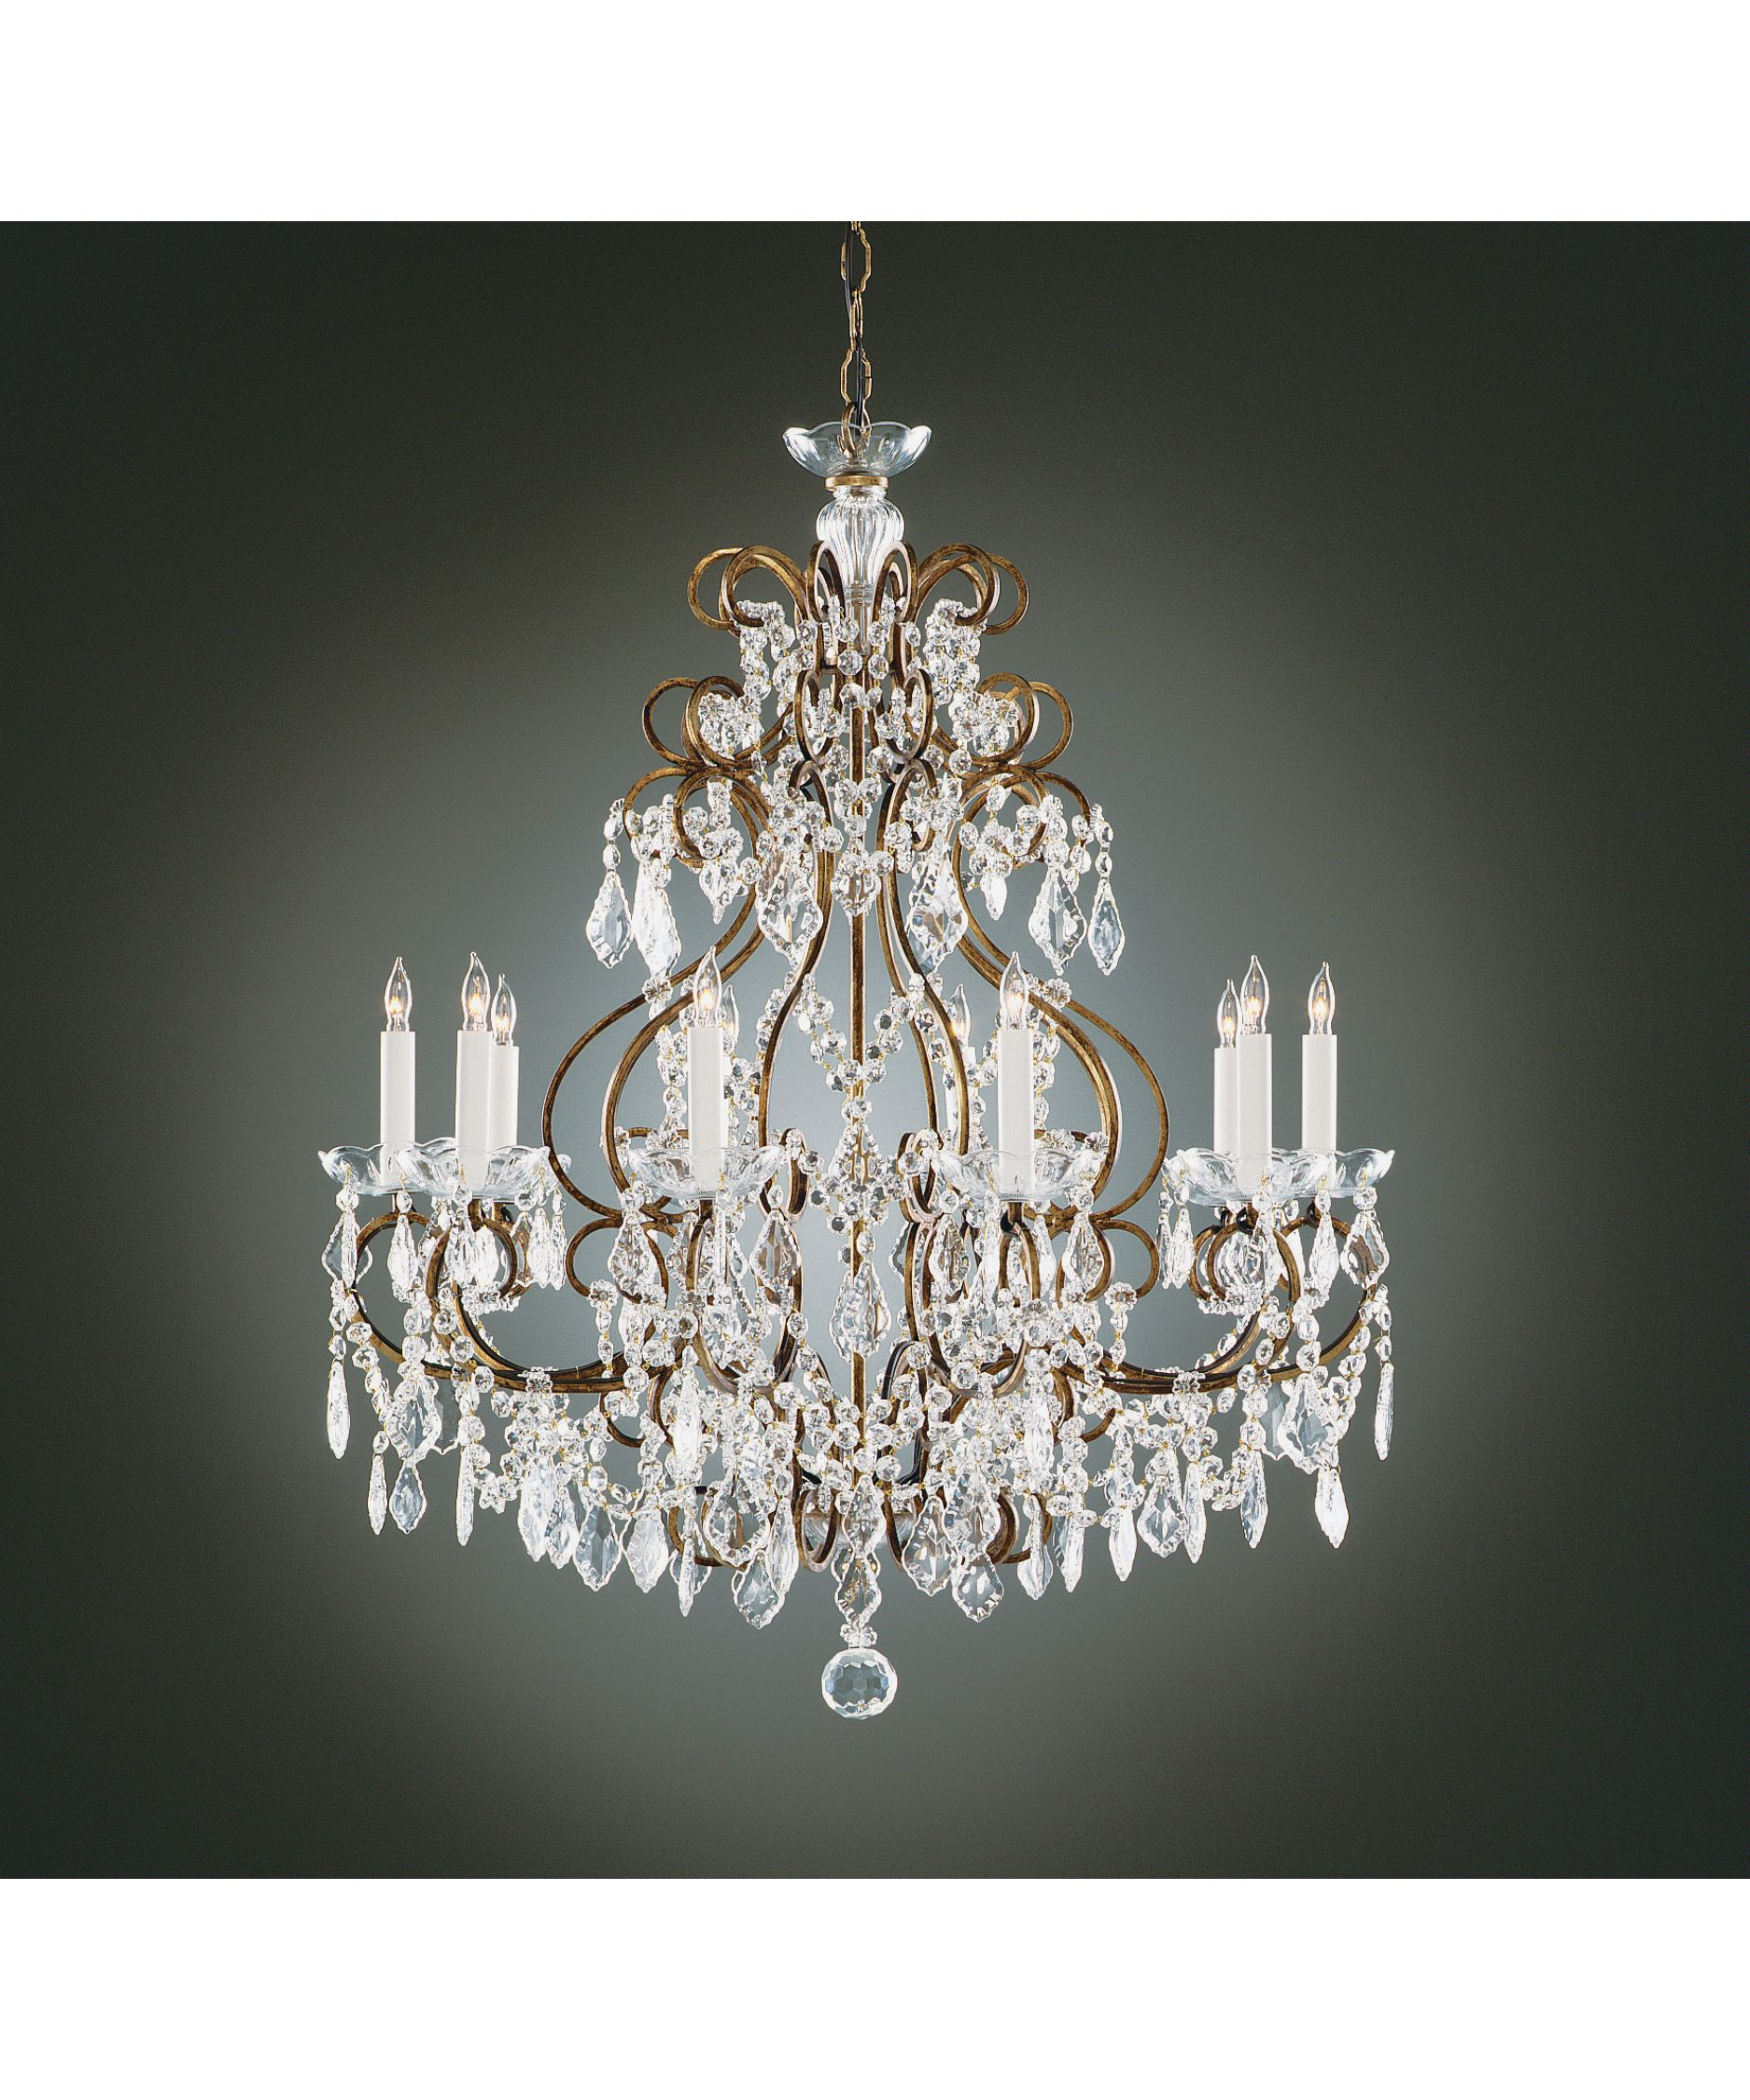 wildwood 2263 gold and crystals single tier chandelier capitol